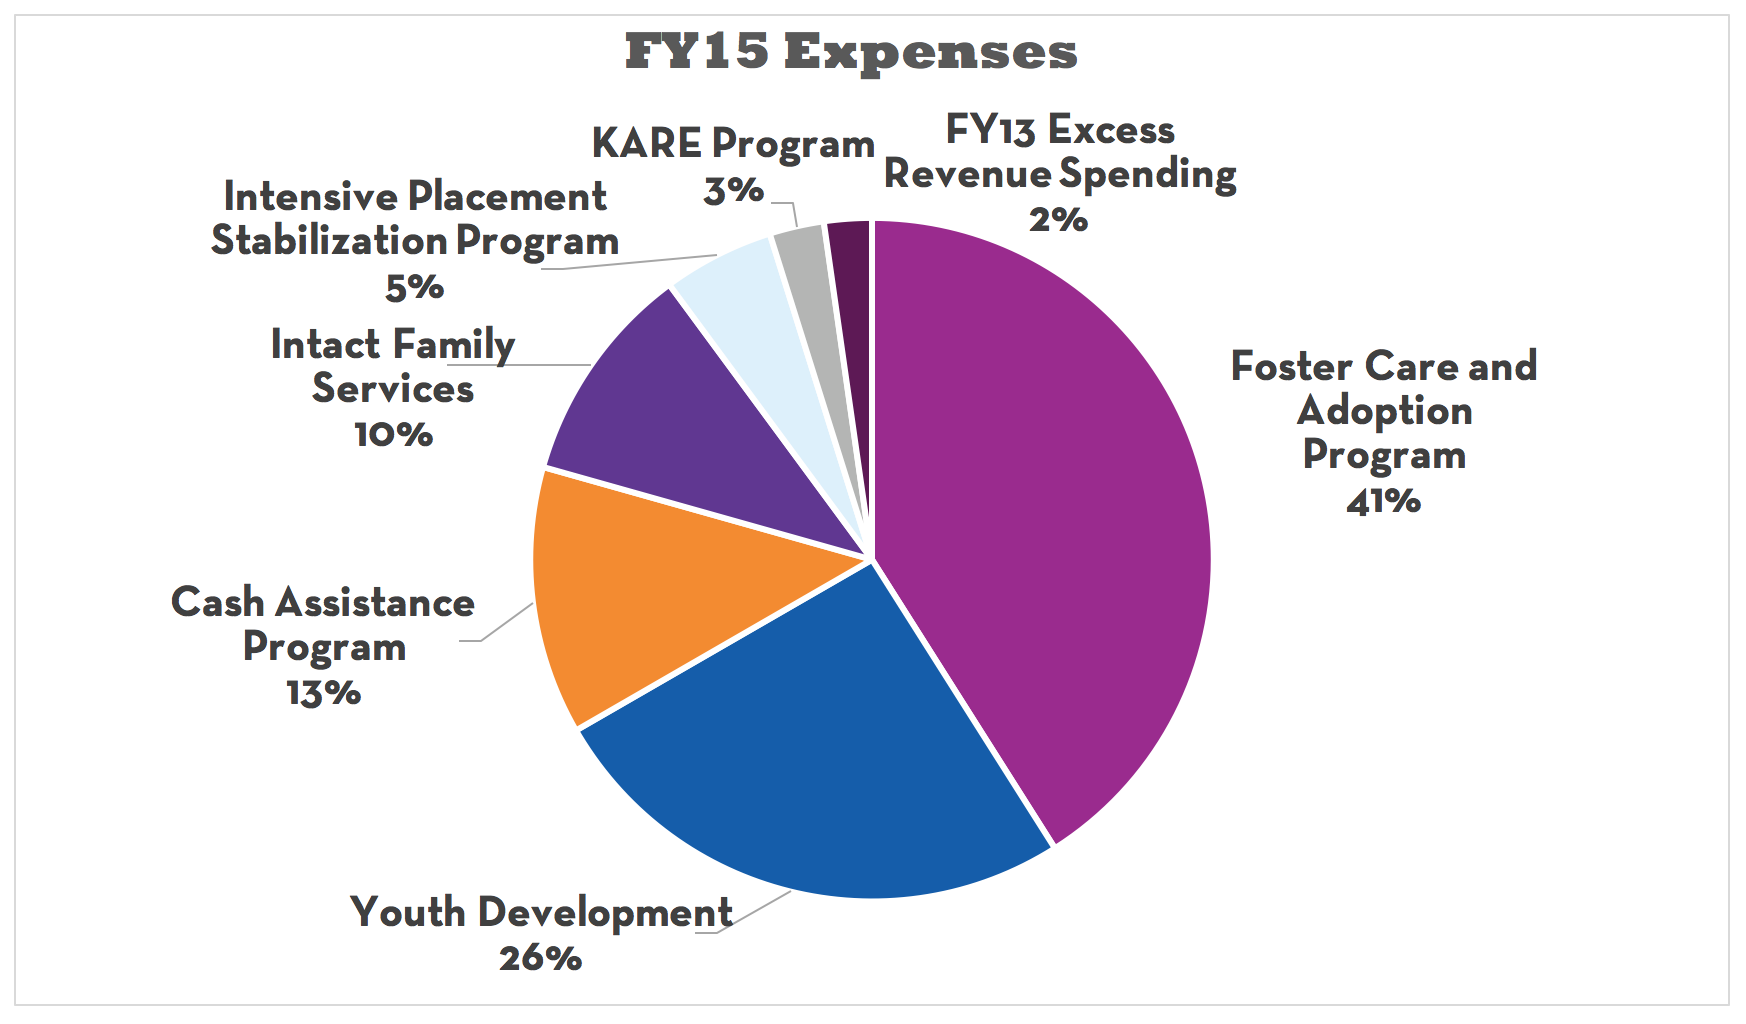 Kaleidoscope FY15 Expenses Chart